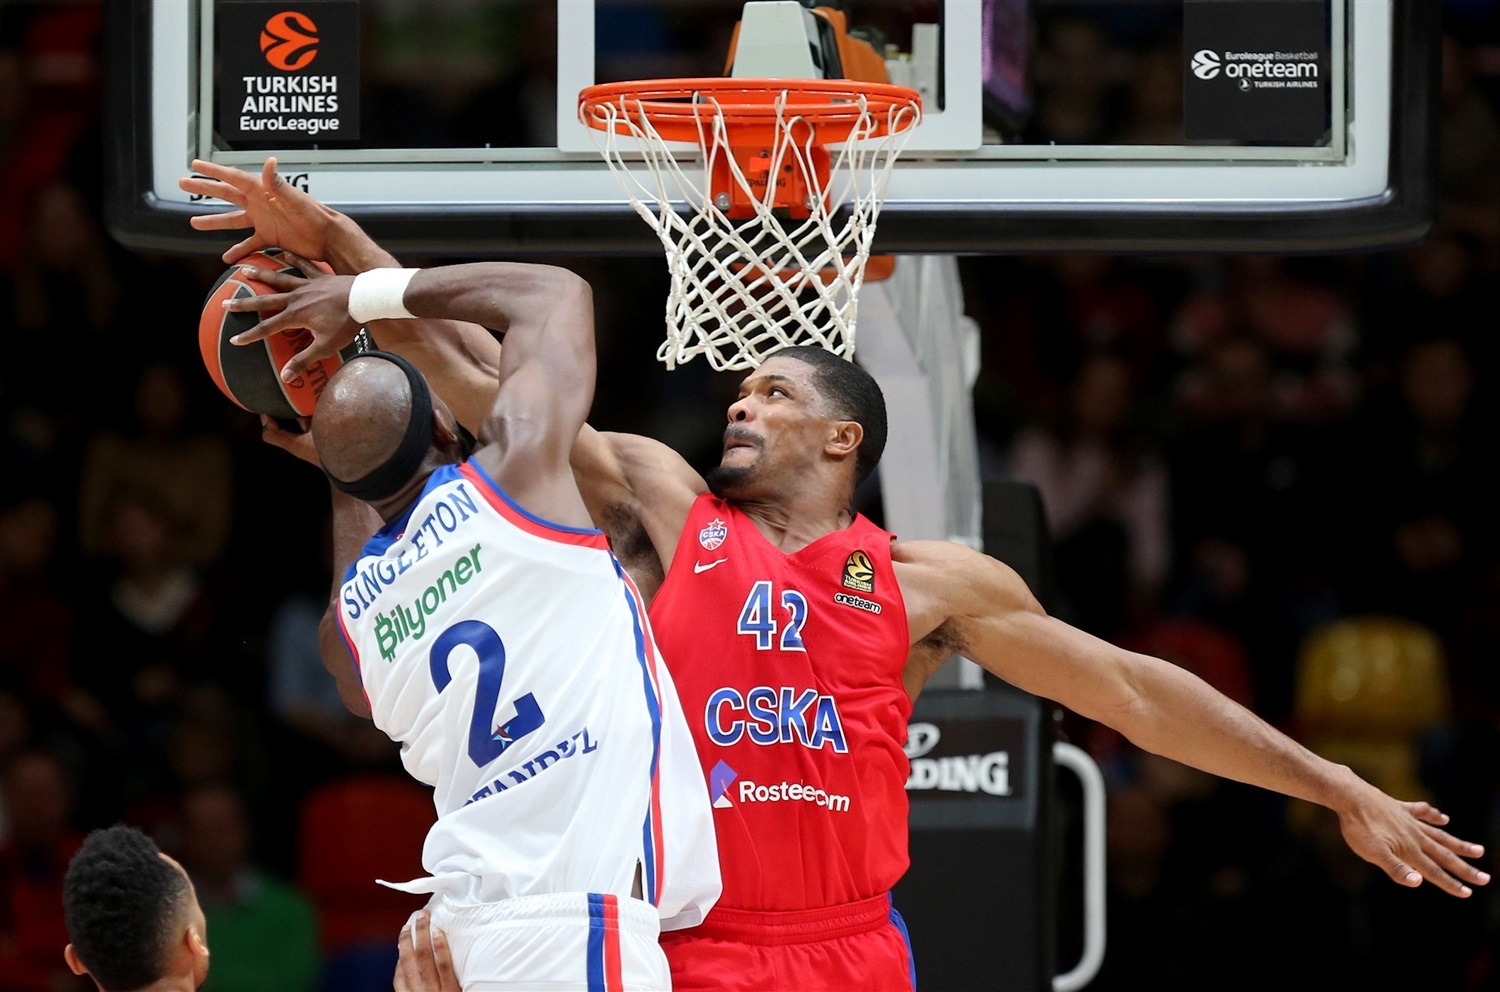 Kyle Hines - CSKA Moscow - EB19_adcne8gv8pd48h7l